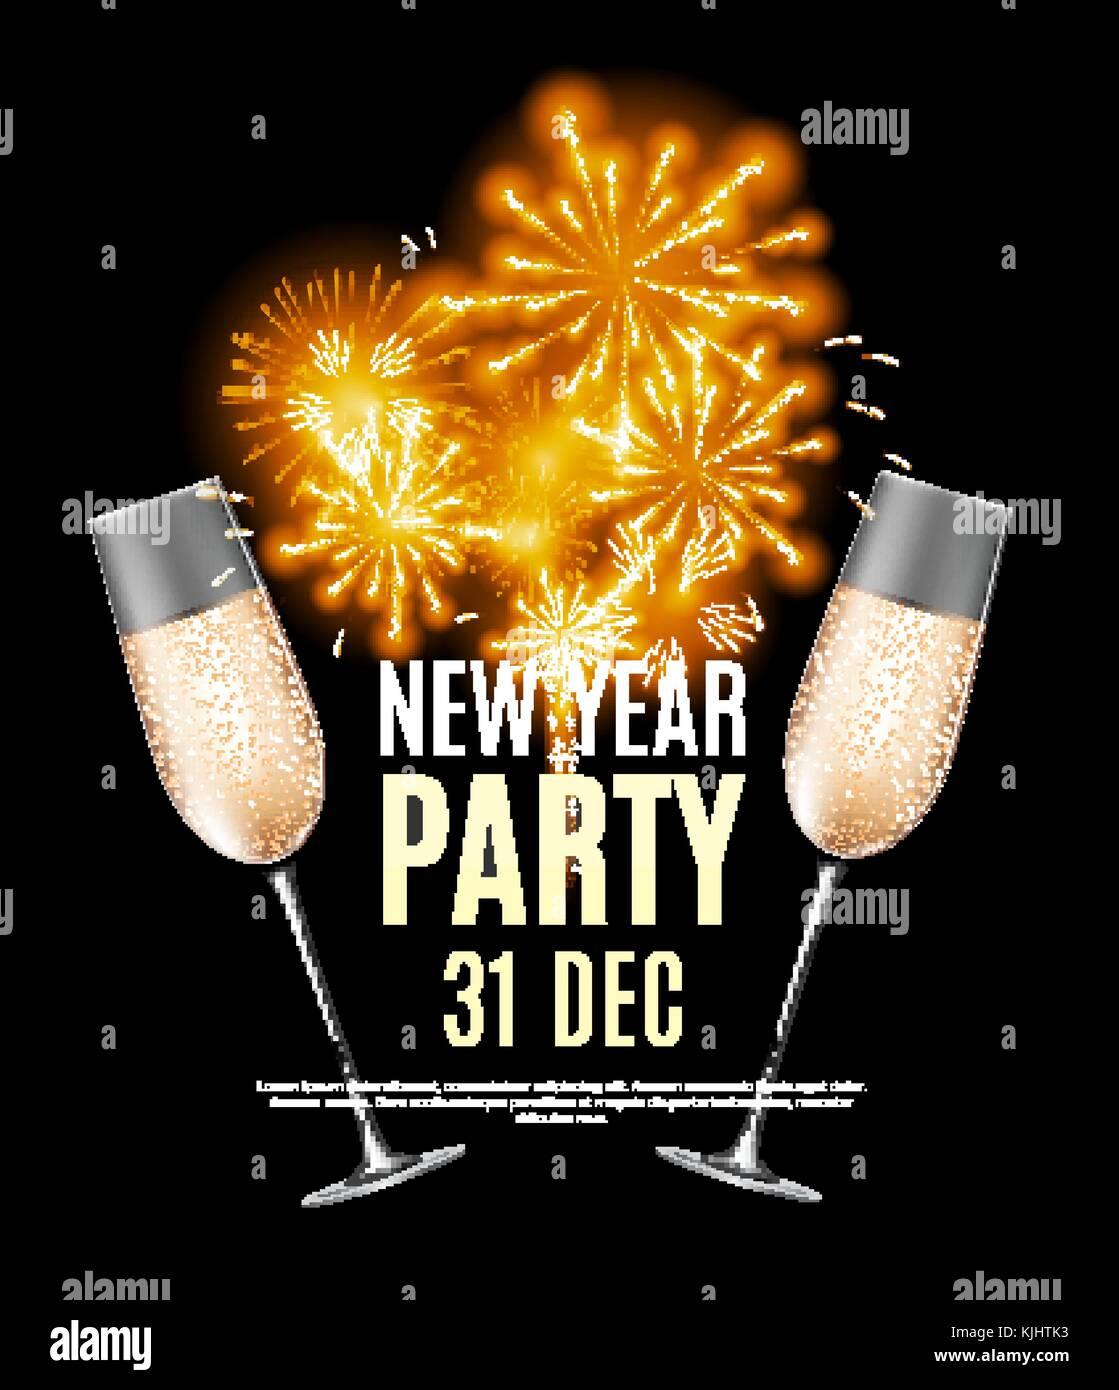 happy new year party 31 december poster vector illustration stock image